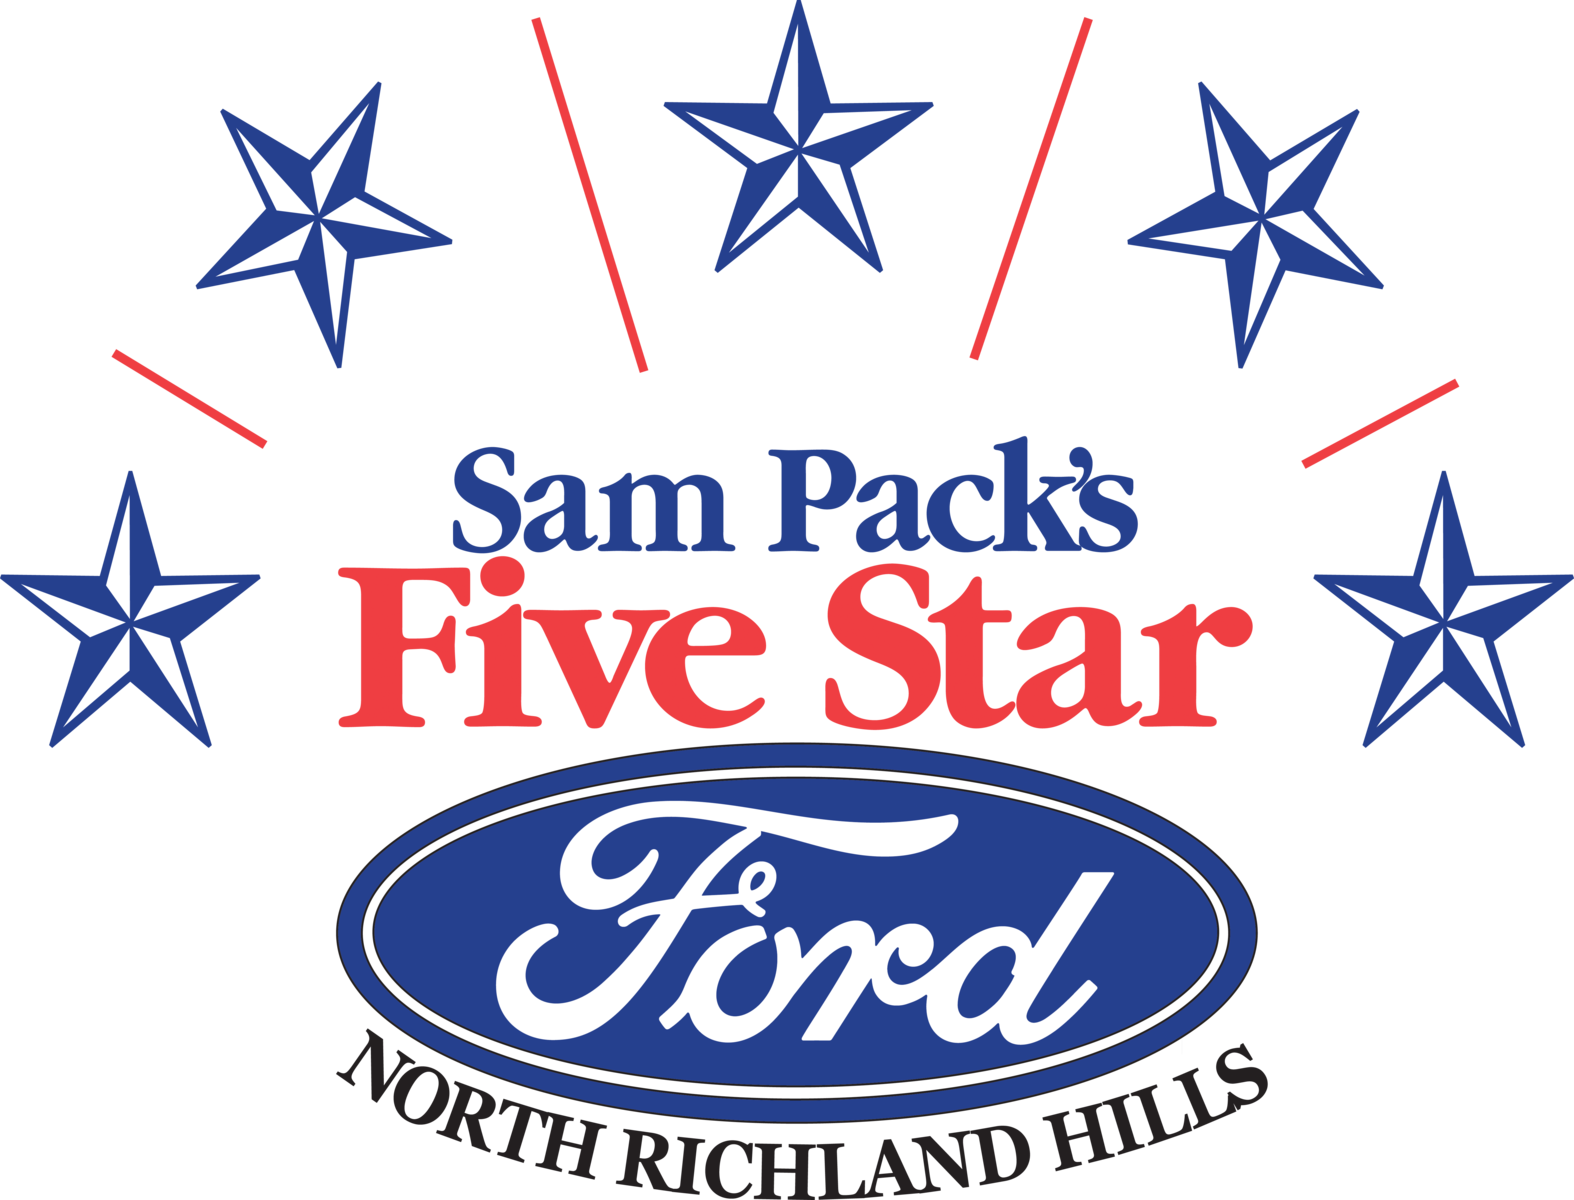 Five Star Ford North Richland Hills >> Five Star Ford North Richland Hills North Richland Hills